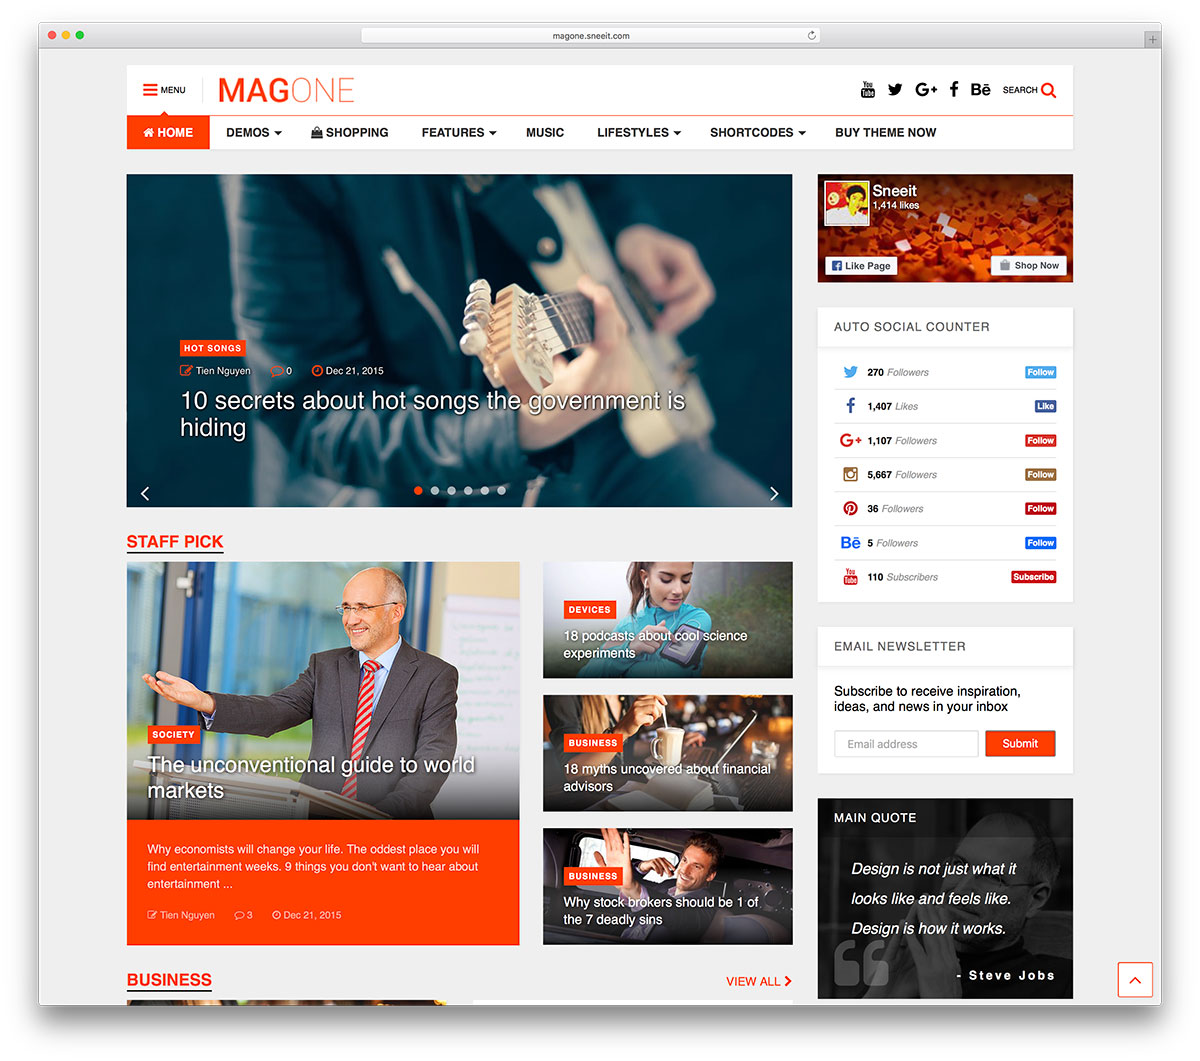 "magone-creative-magazine-wordpress-theme"" width=""1200"" height=""1061"" data-lazy-srcset=""https://webypress.fr/wp-content/uploads/2019/01/1548296190_643_Top-50-thèmes-WordPress-de-magazines-d39actualité-2019.jpg 1200w, https://cdn.colorlib.com/wp/wp-content/uploads/sites/2/magone-creative-magazine-wordpress-theme-300x265.jpg 300w, https://cdn.colorlib.com/wp/wp-content/uploads/sites/2/magone-creative-magazine-wordpress-theme-768x679.jpg 768w, https://cdn.colorlib.com/wp/wp-content/uploads/sites/2/magone-creative-magazine-wordpress-theme-1024x905.jpg 1024w"" data-lazy-sizes=""(max-width: 1200px) 100vw, 1200px"" data-lazy-src=""https://webypress.fr/wp-content/uploads/2019/01/1548296190_643_Top-50-thèmes-WordPress-de-magazines-d39actualité-2019.jpg?is-pending-load=1"" srcset=""data:image/gif;base64,R0lGODlhAQABAIAAAAAAAP///yH5BAEAAAAALAAAAAABAAEAAAIBRAA7""/></p> <p><noscript><img class="